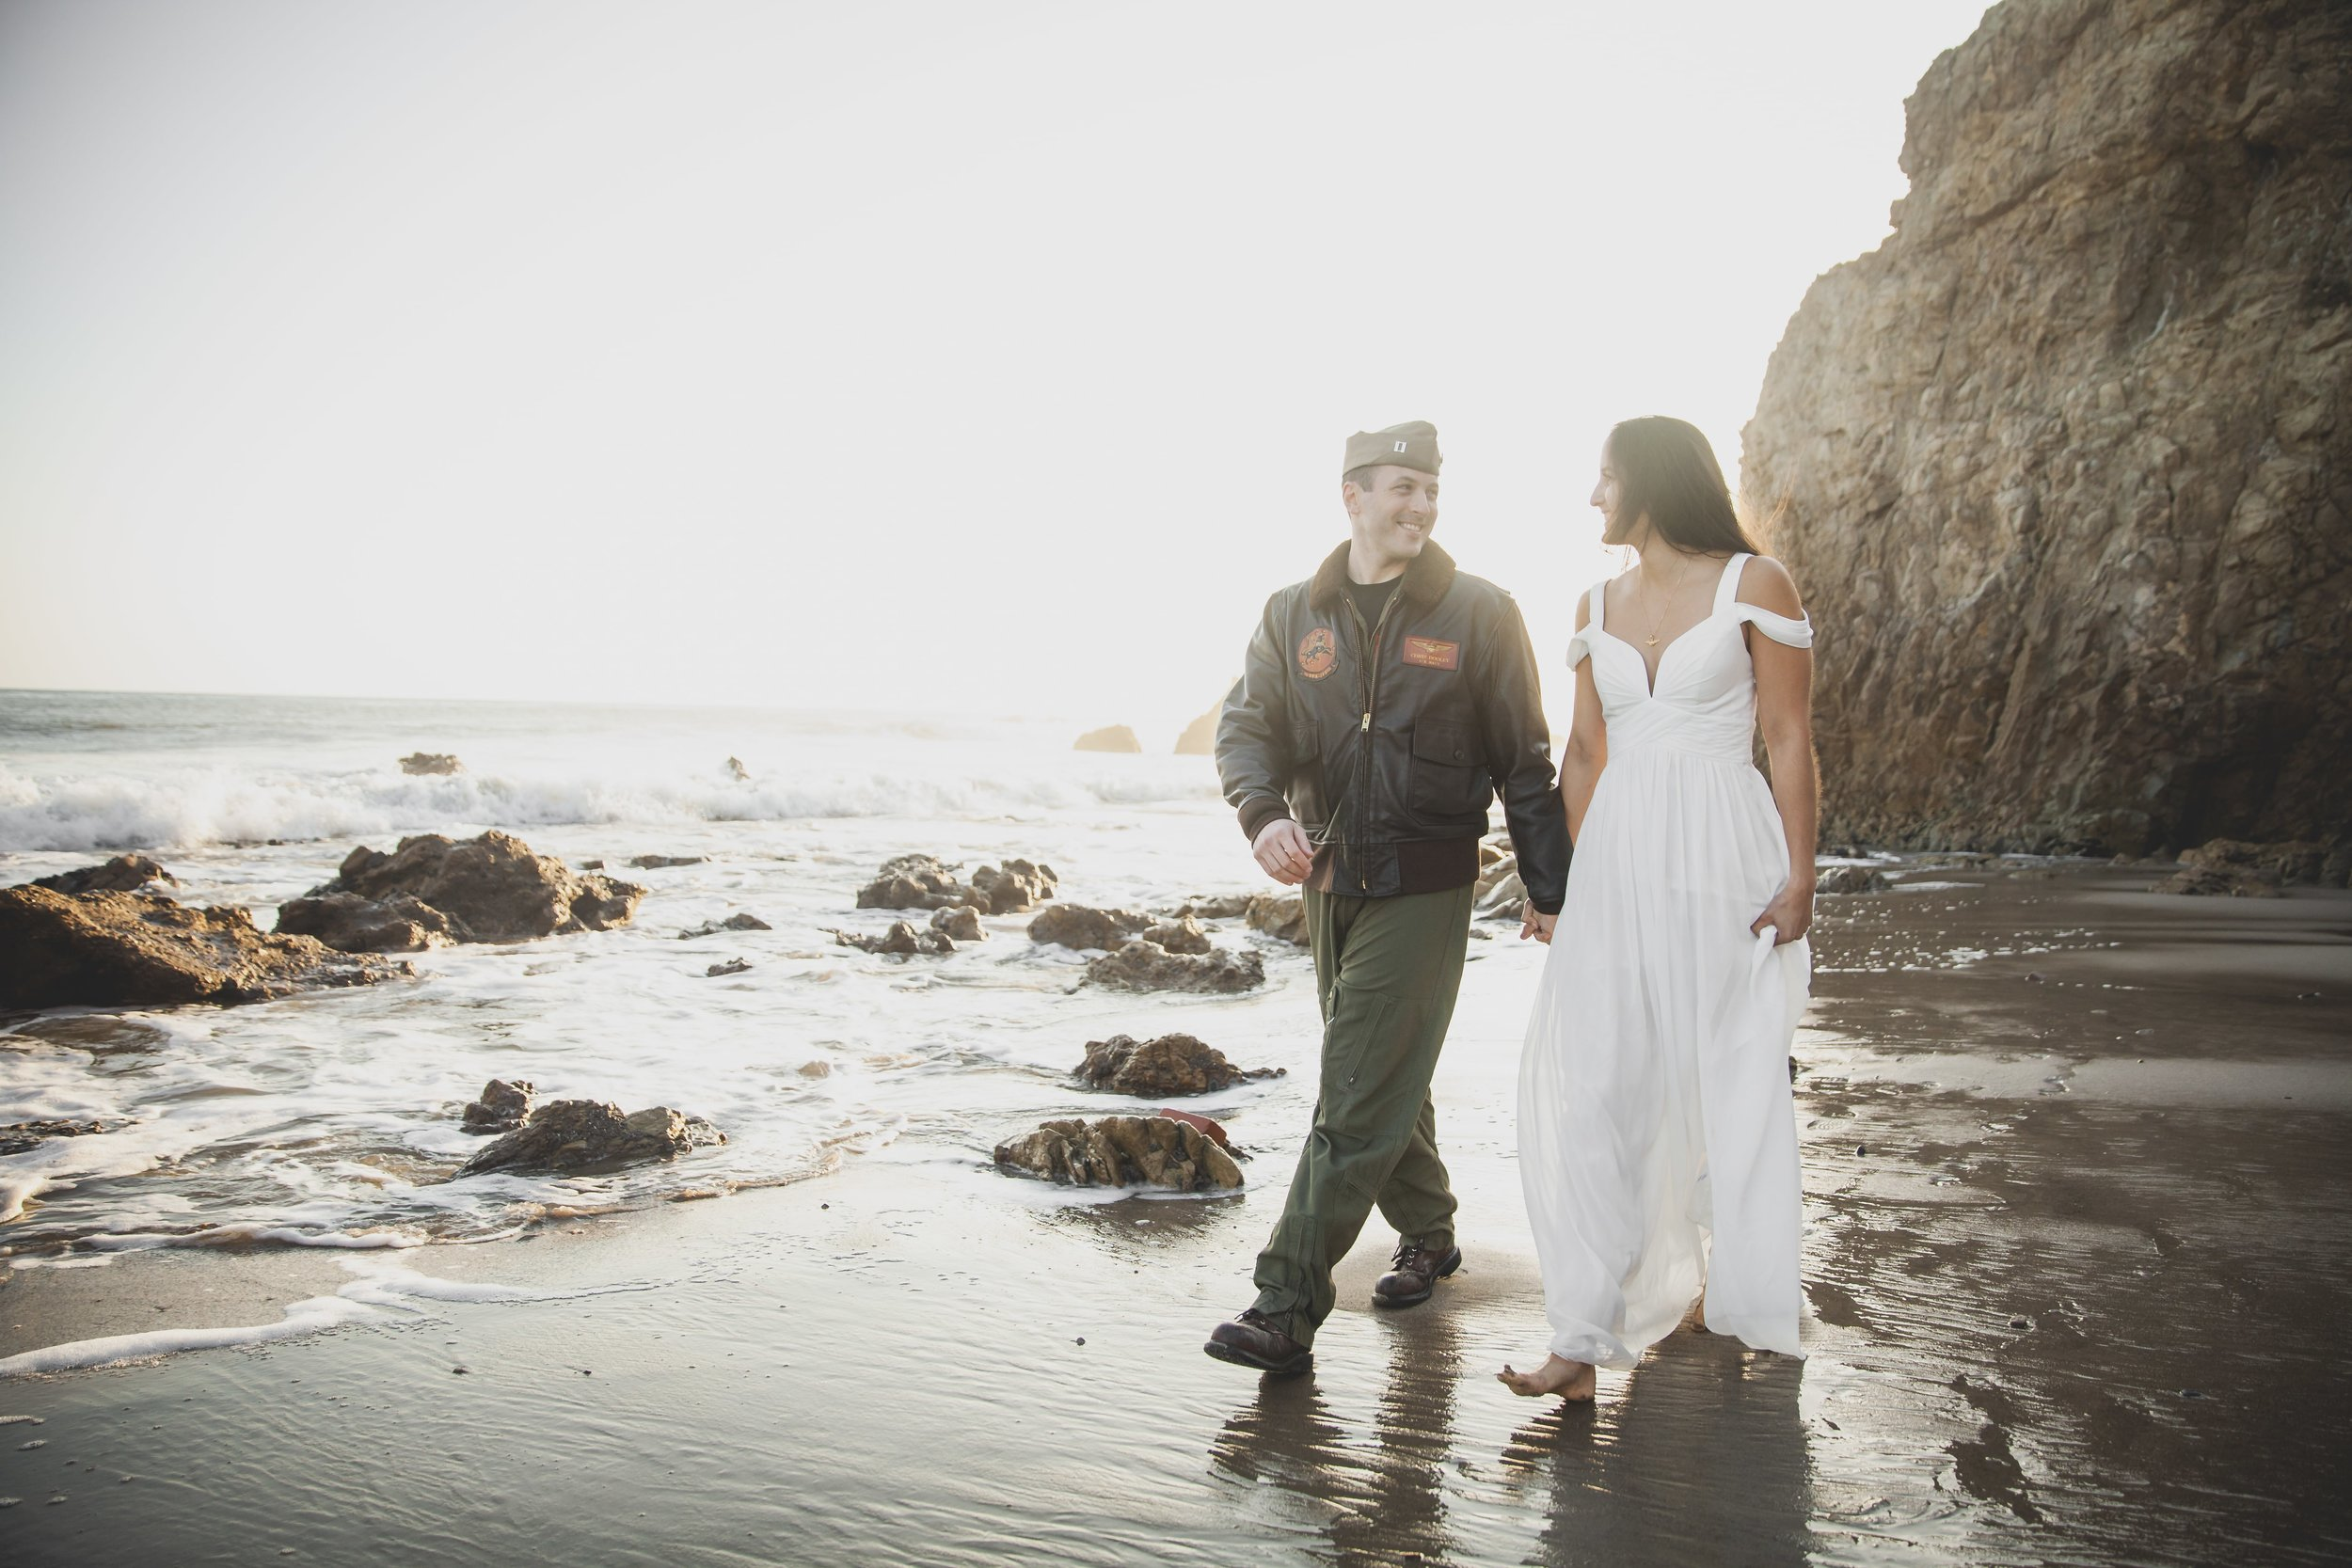 California Engagement Photography - Man in green military uniform walking with a woman in a white dress along the beach.